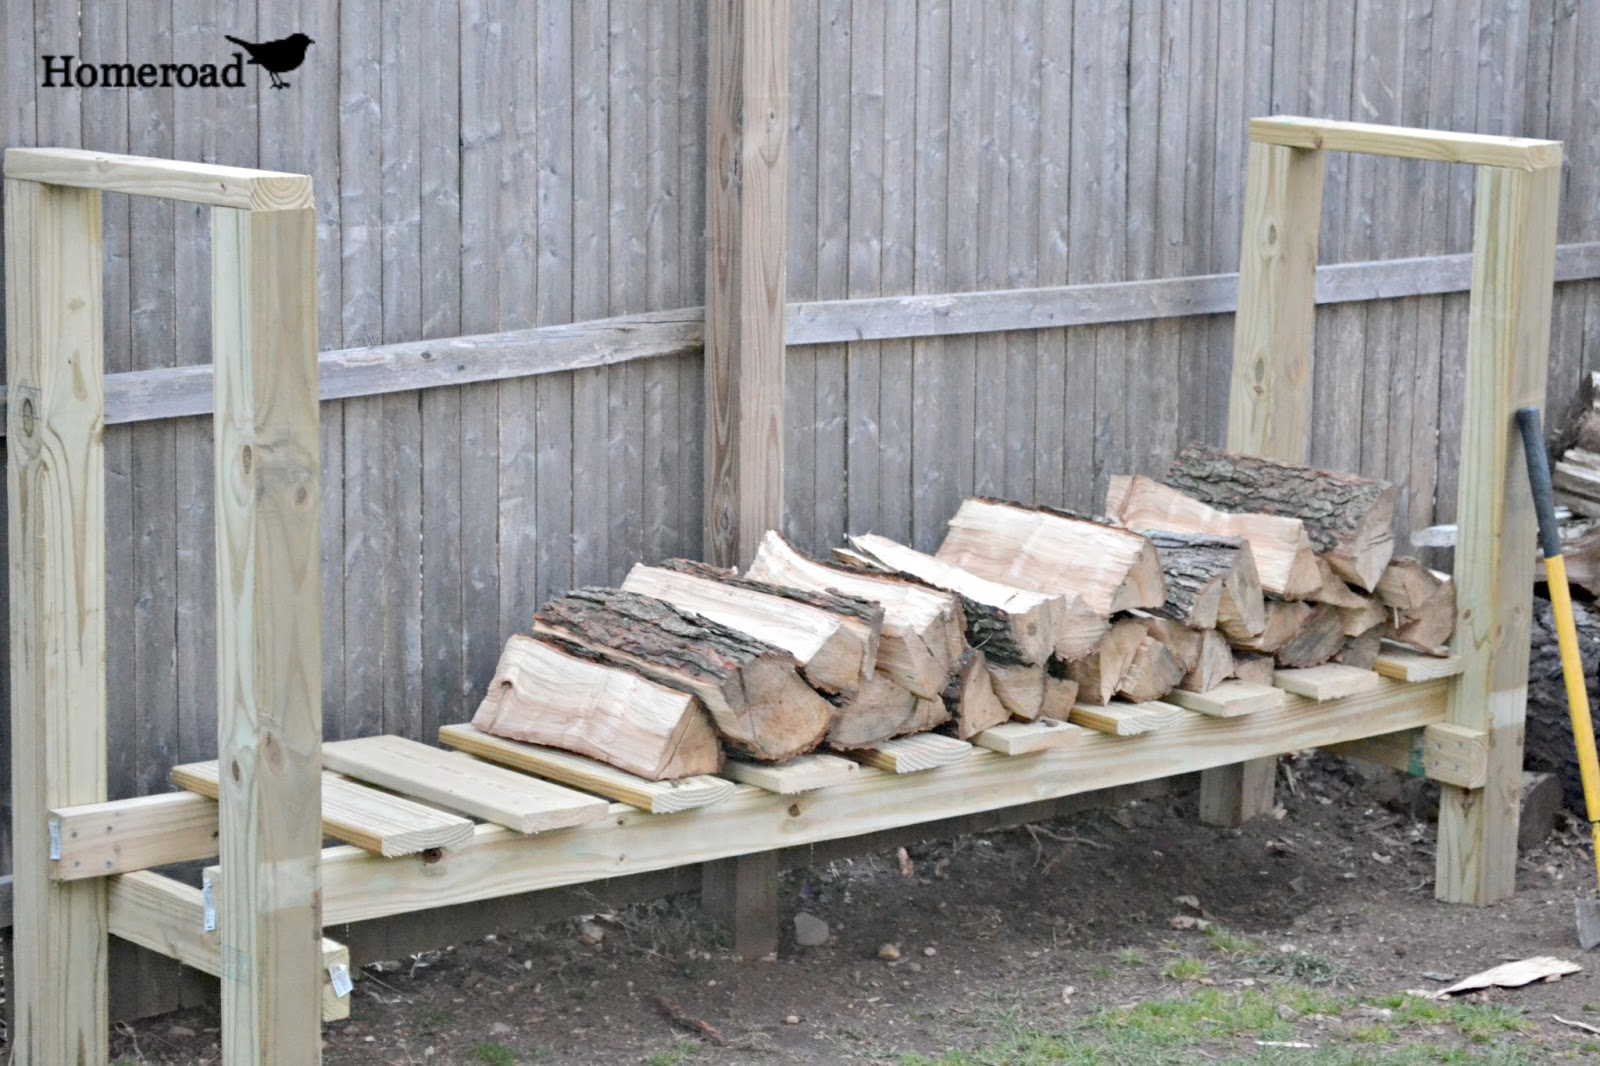 DIY Log Holder Homeroad